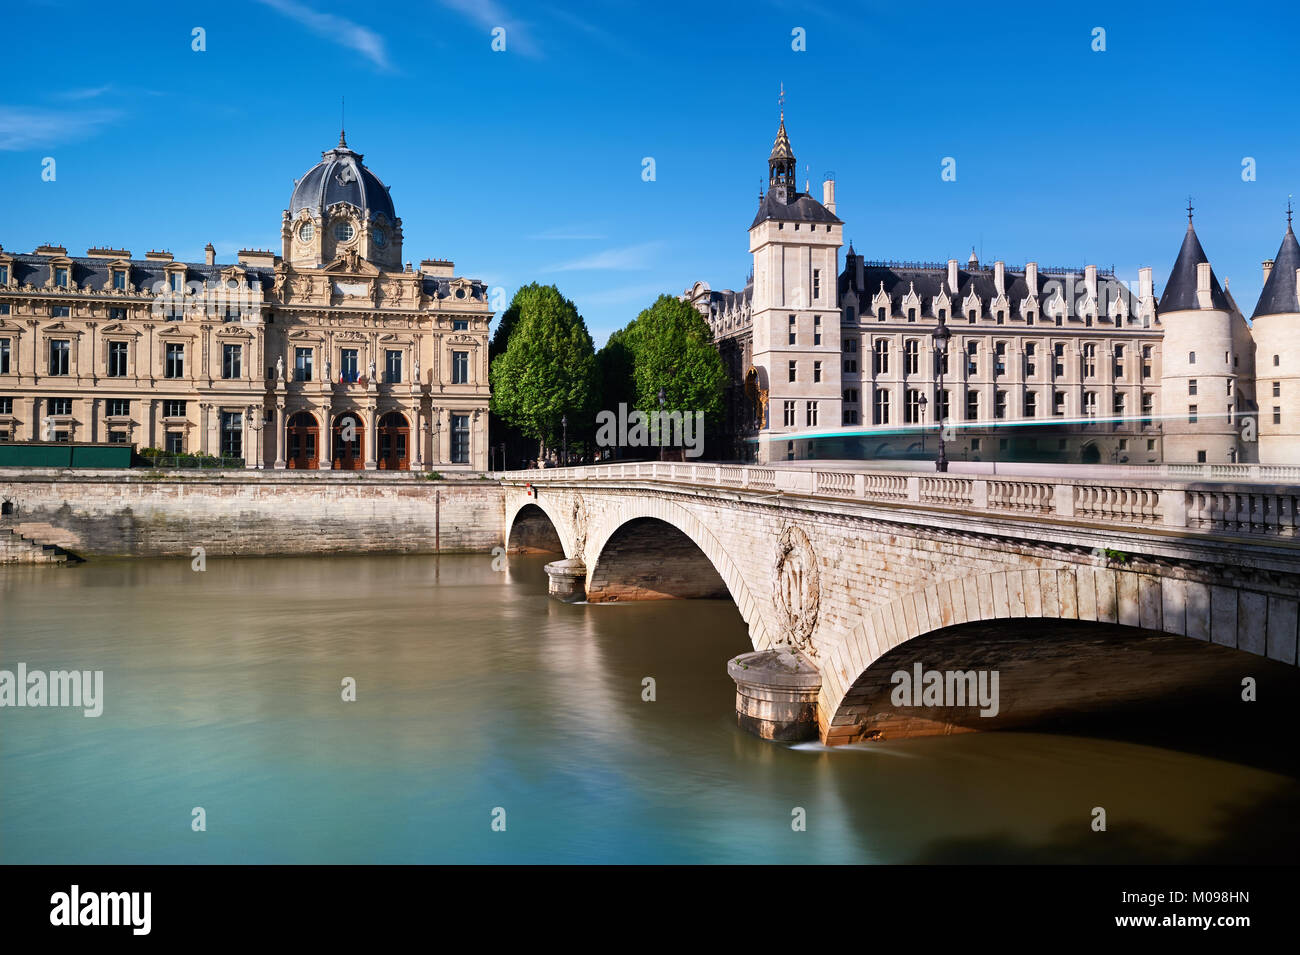 The Pont au Change connecting island Ile de la Cite with the Right Bank. Building on the left is Registry of the - Stock Image